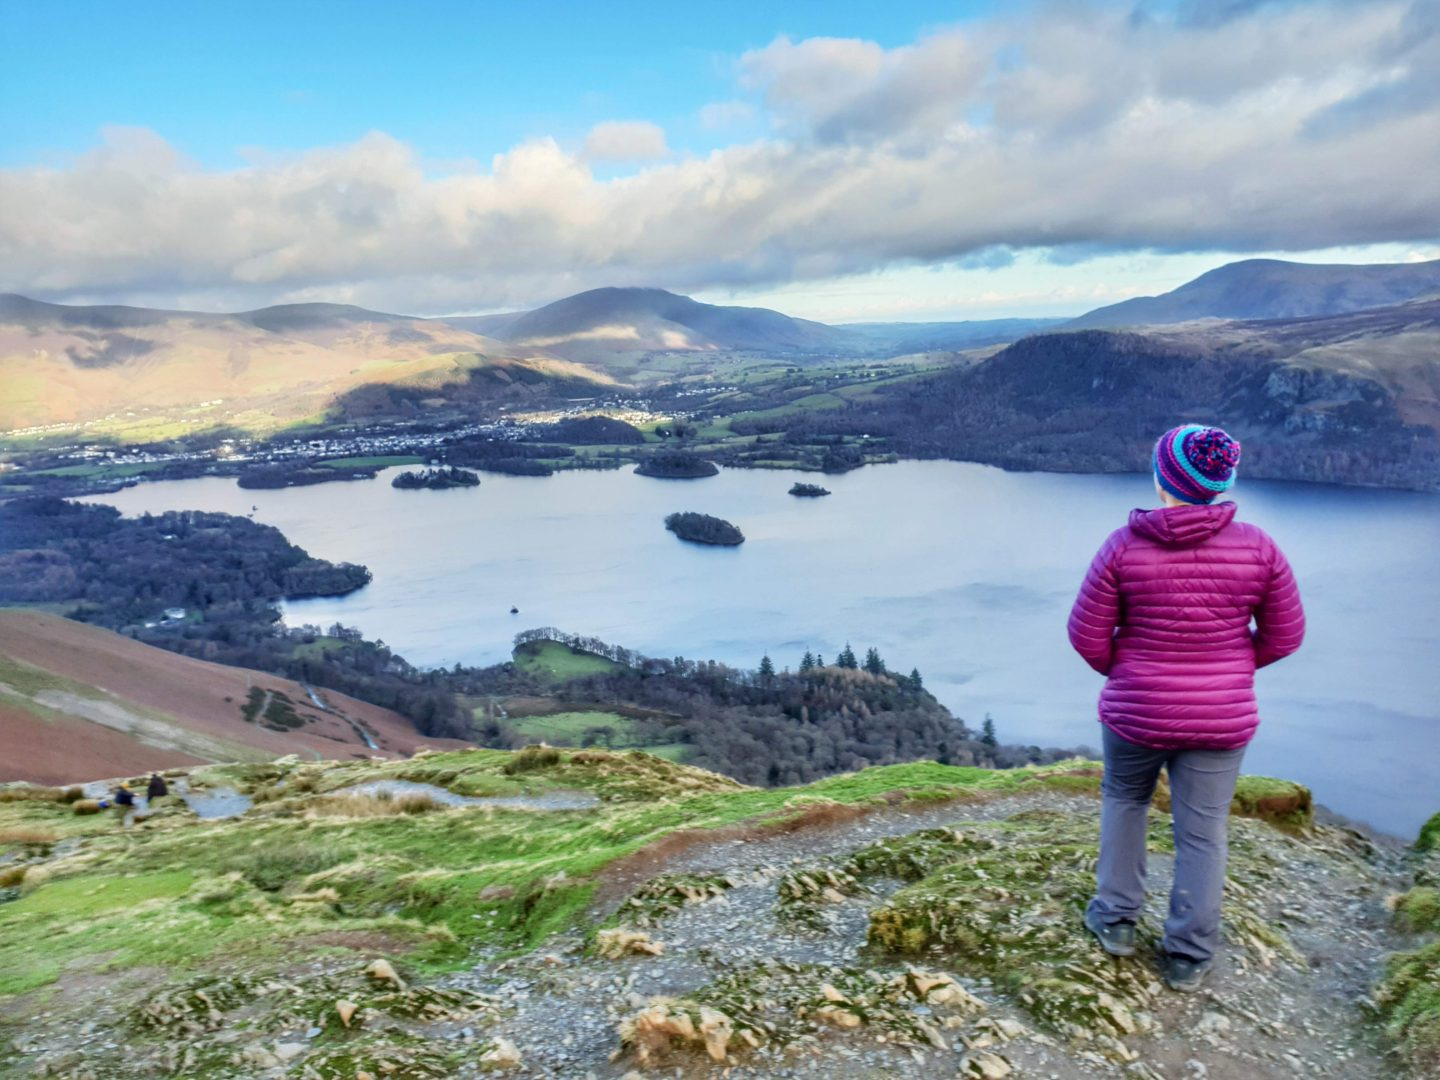 View over Derwent Water from Catbells